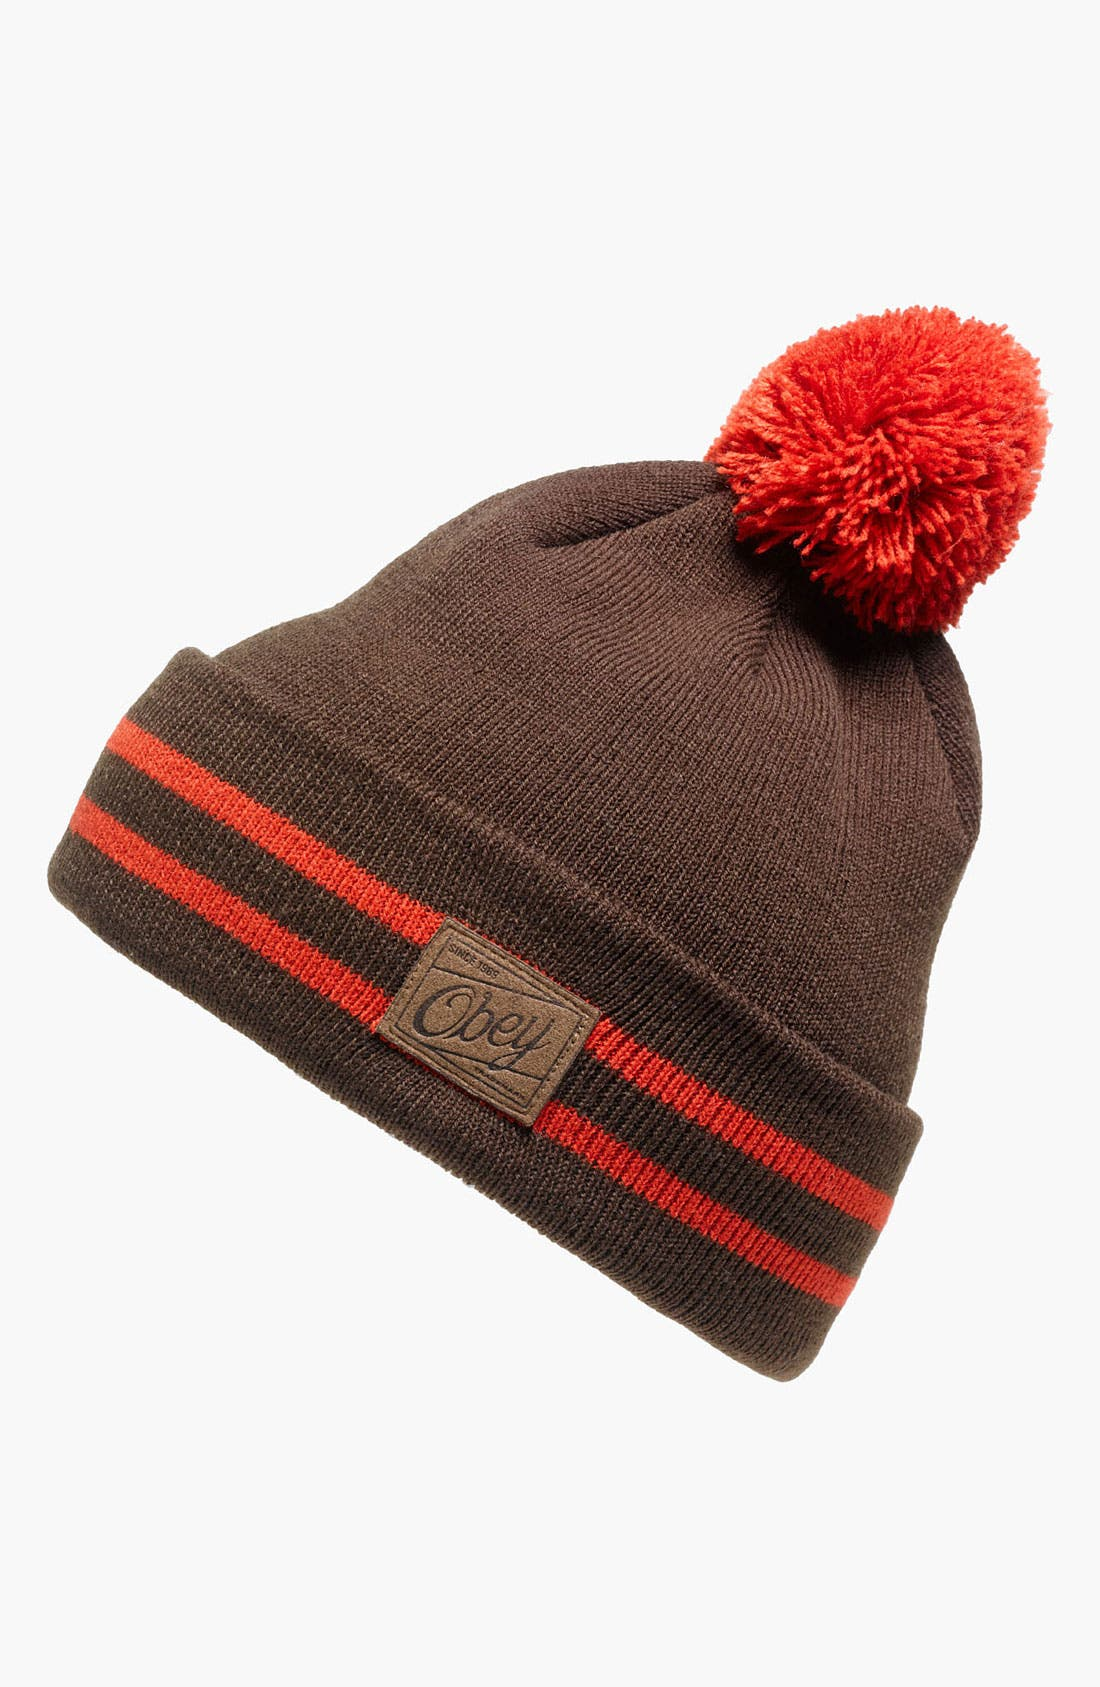 Alternate Image 1 Selected - Obey 'Tilden' Knit Cap